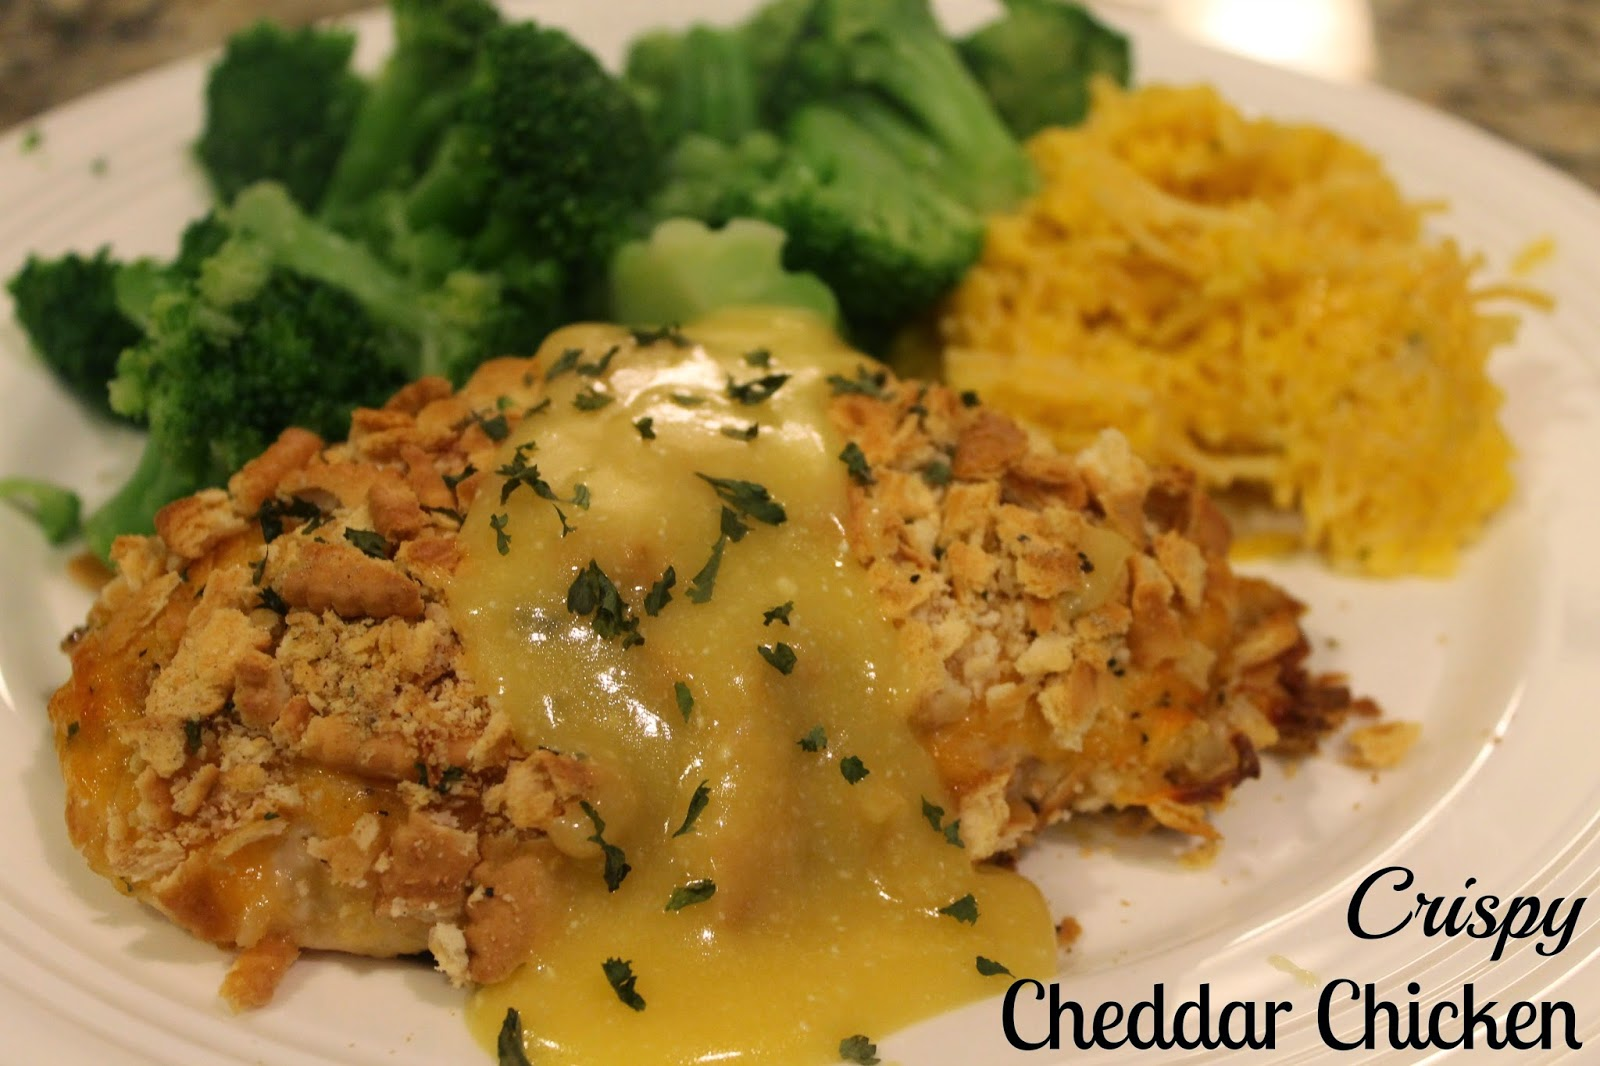 Notes from the Nelsens: Crispy Cheddar Chicken